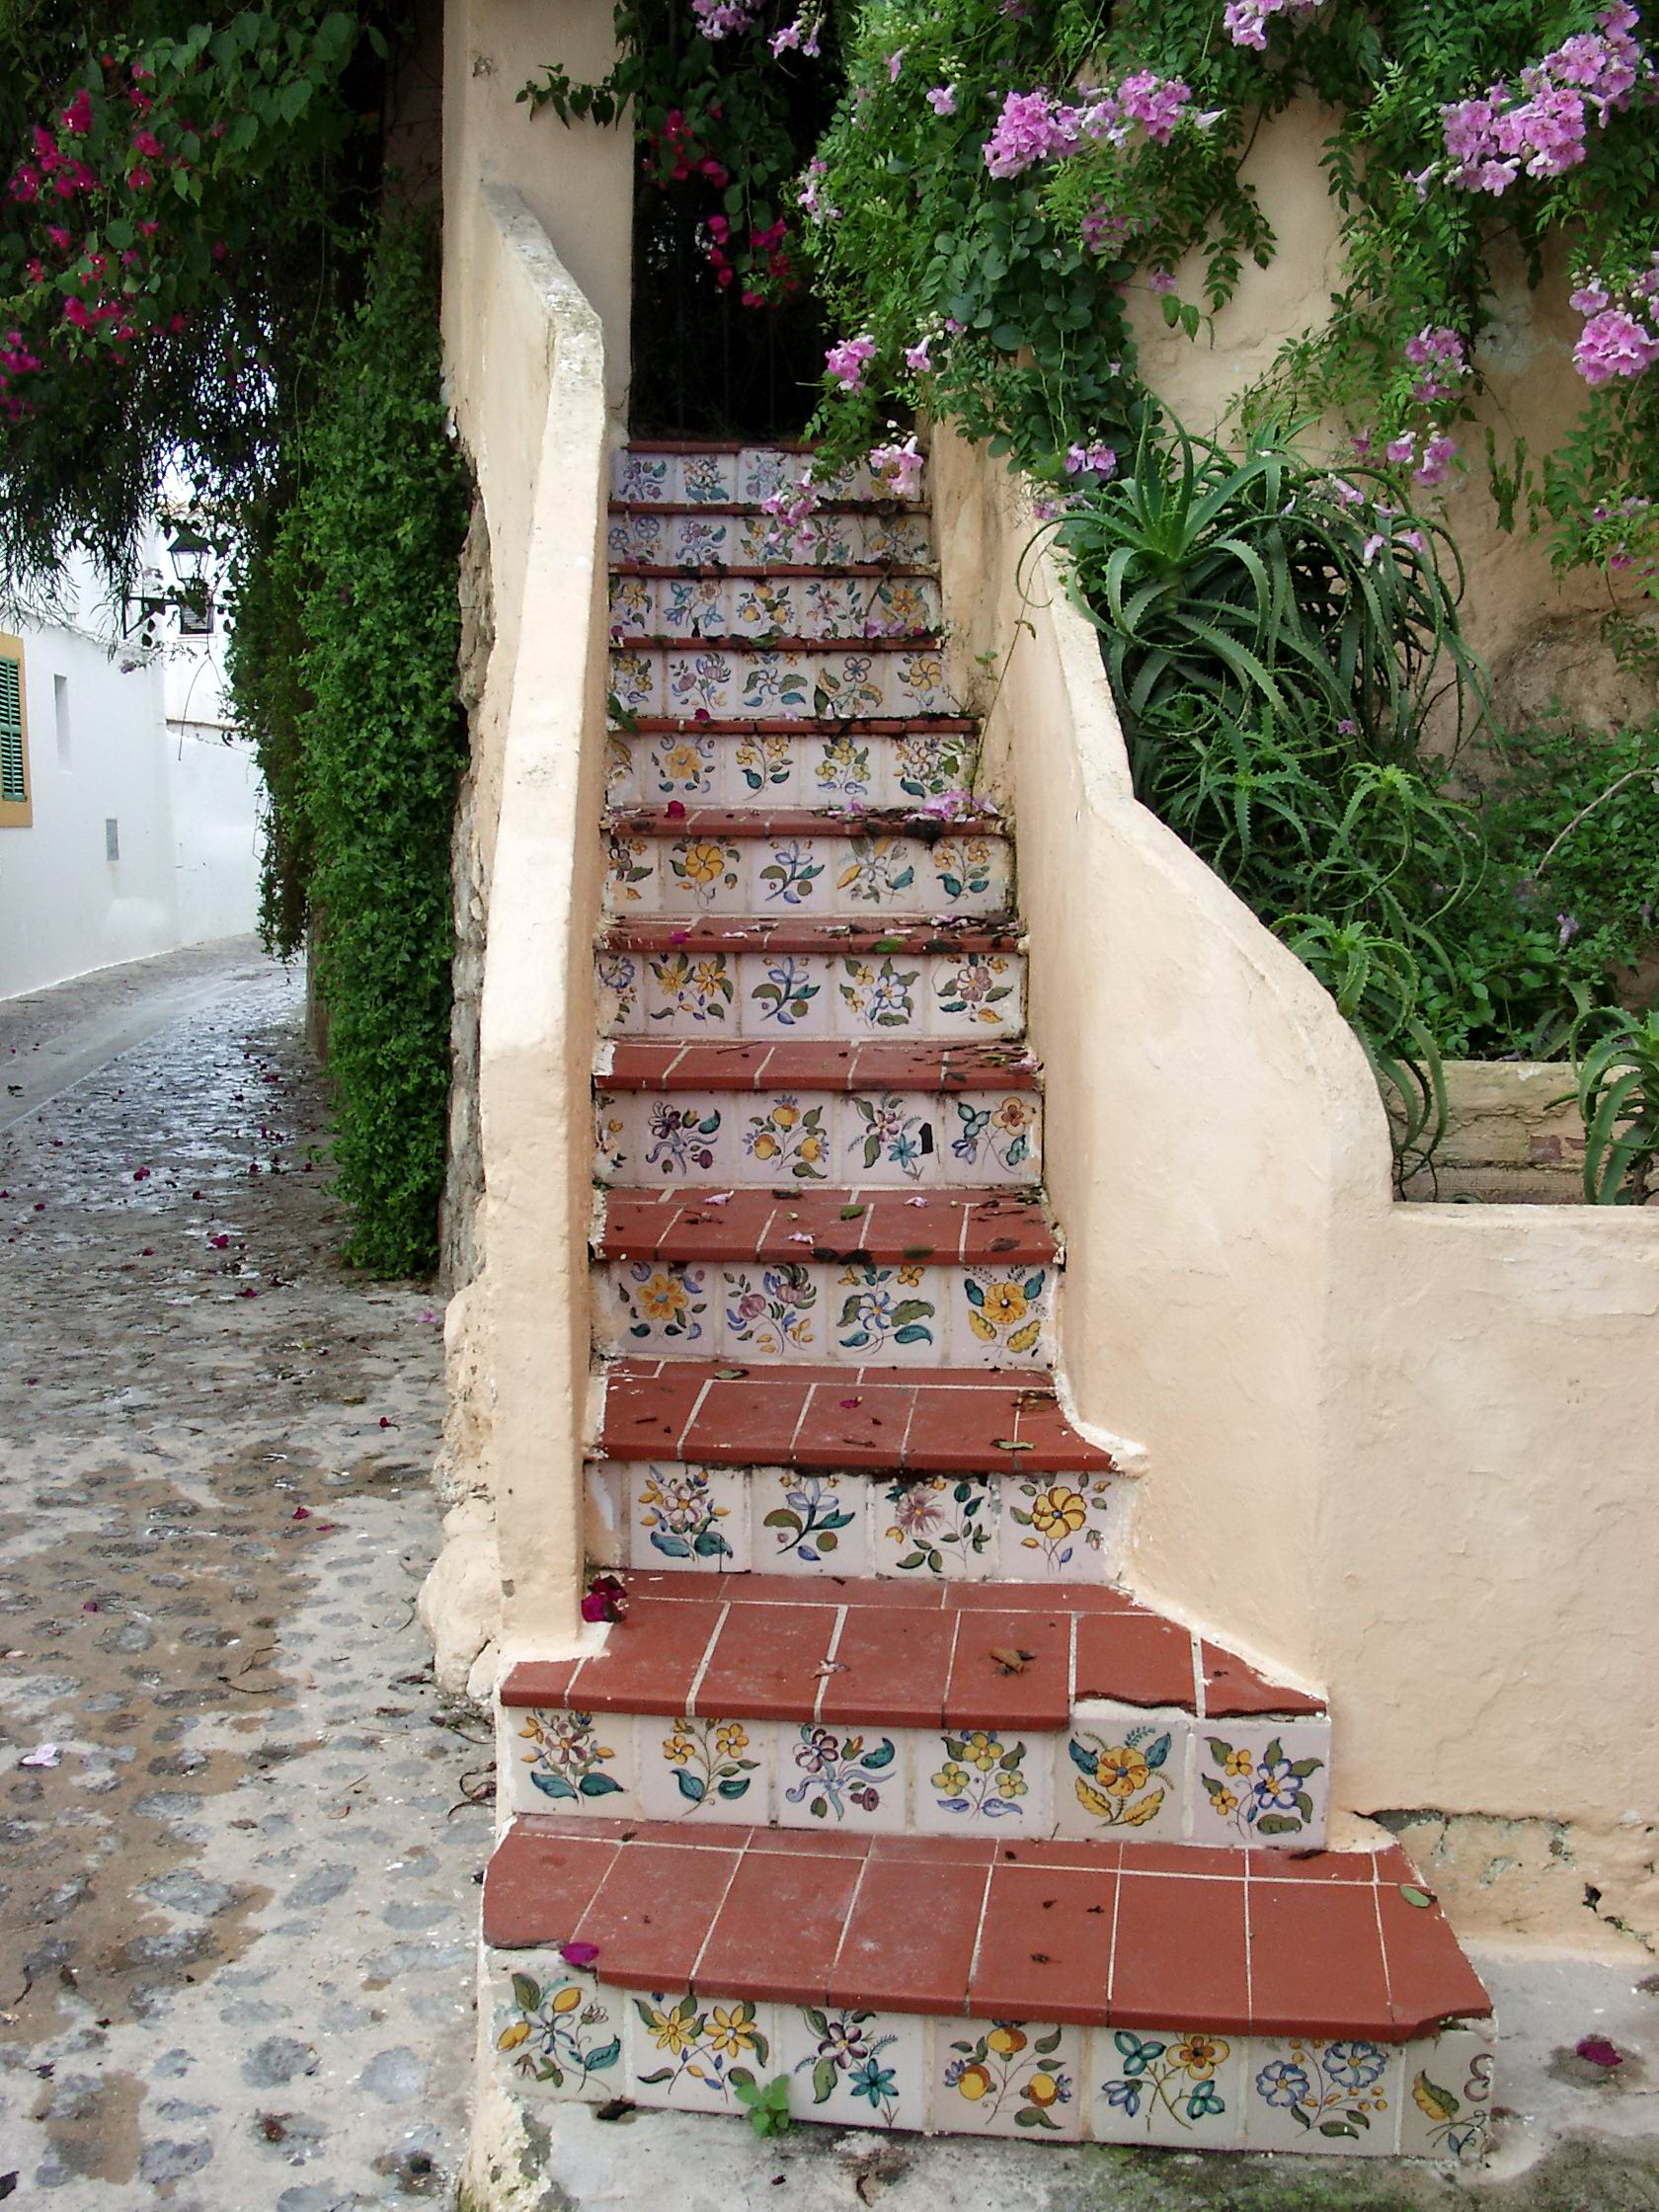 http://upload.wikimedia.org/wikipedia/commons/a/a1/Staircase_in_Eivissa.JPG